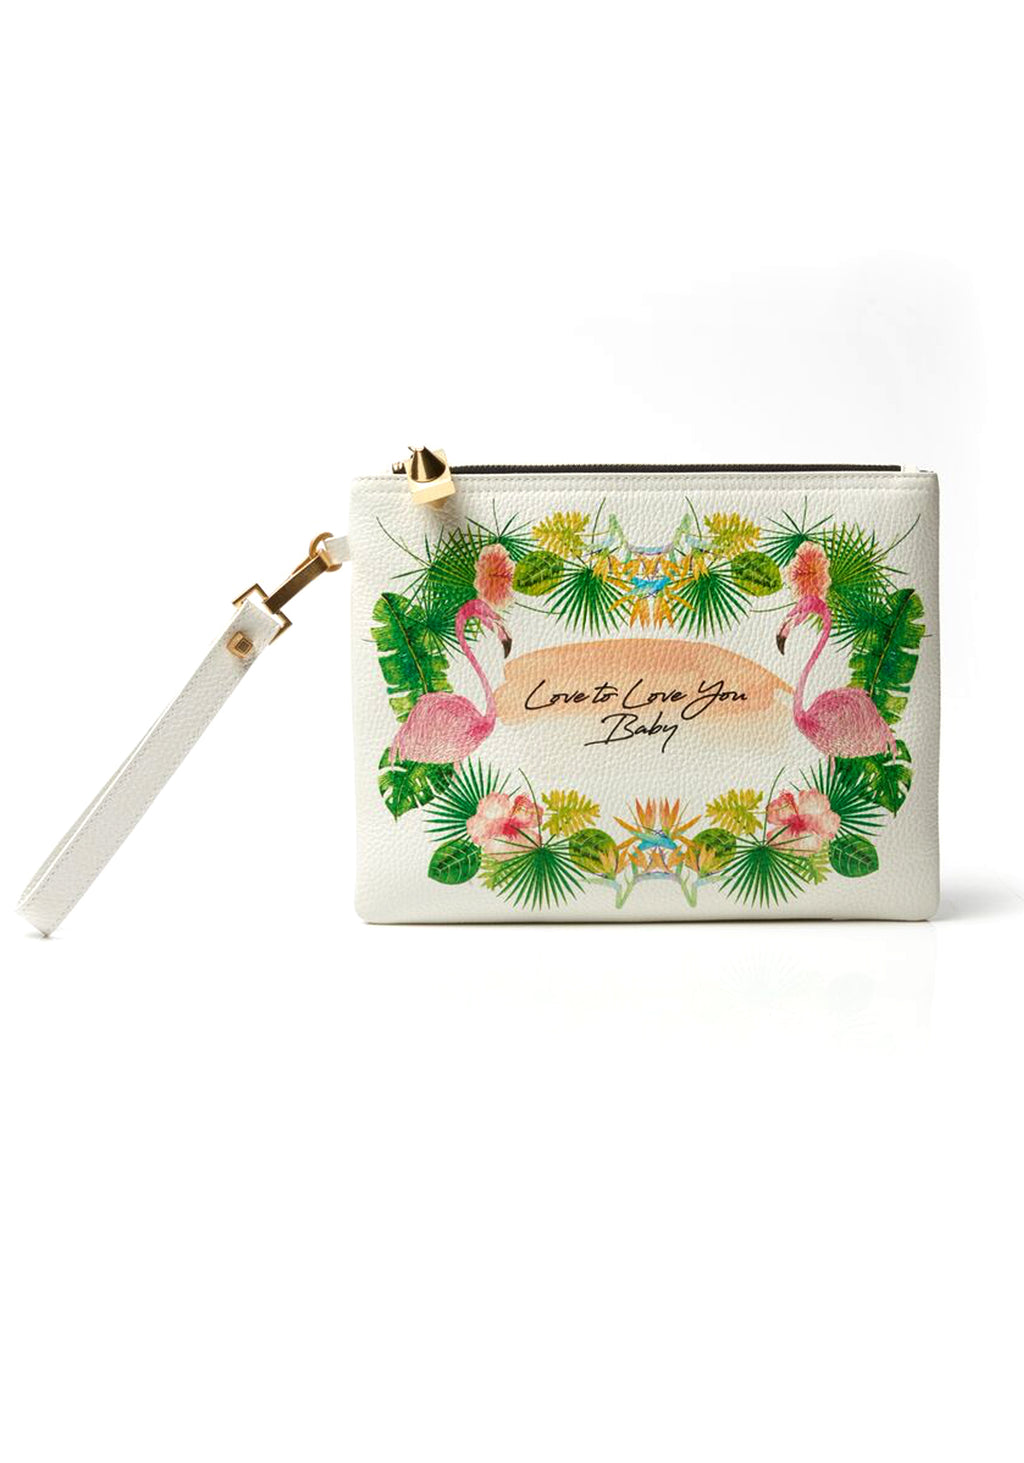 PALOMA POUCH- LOVE TO LOVE YOU BABY